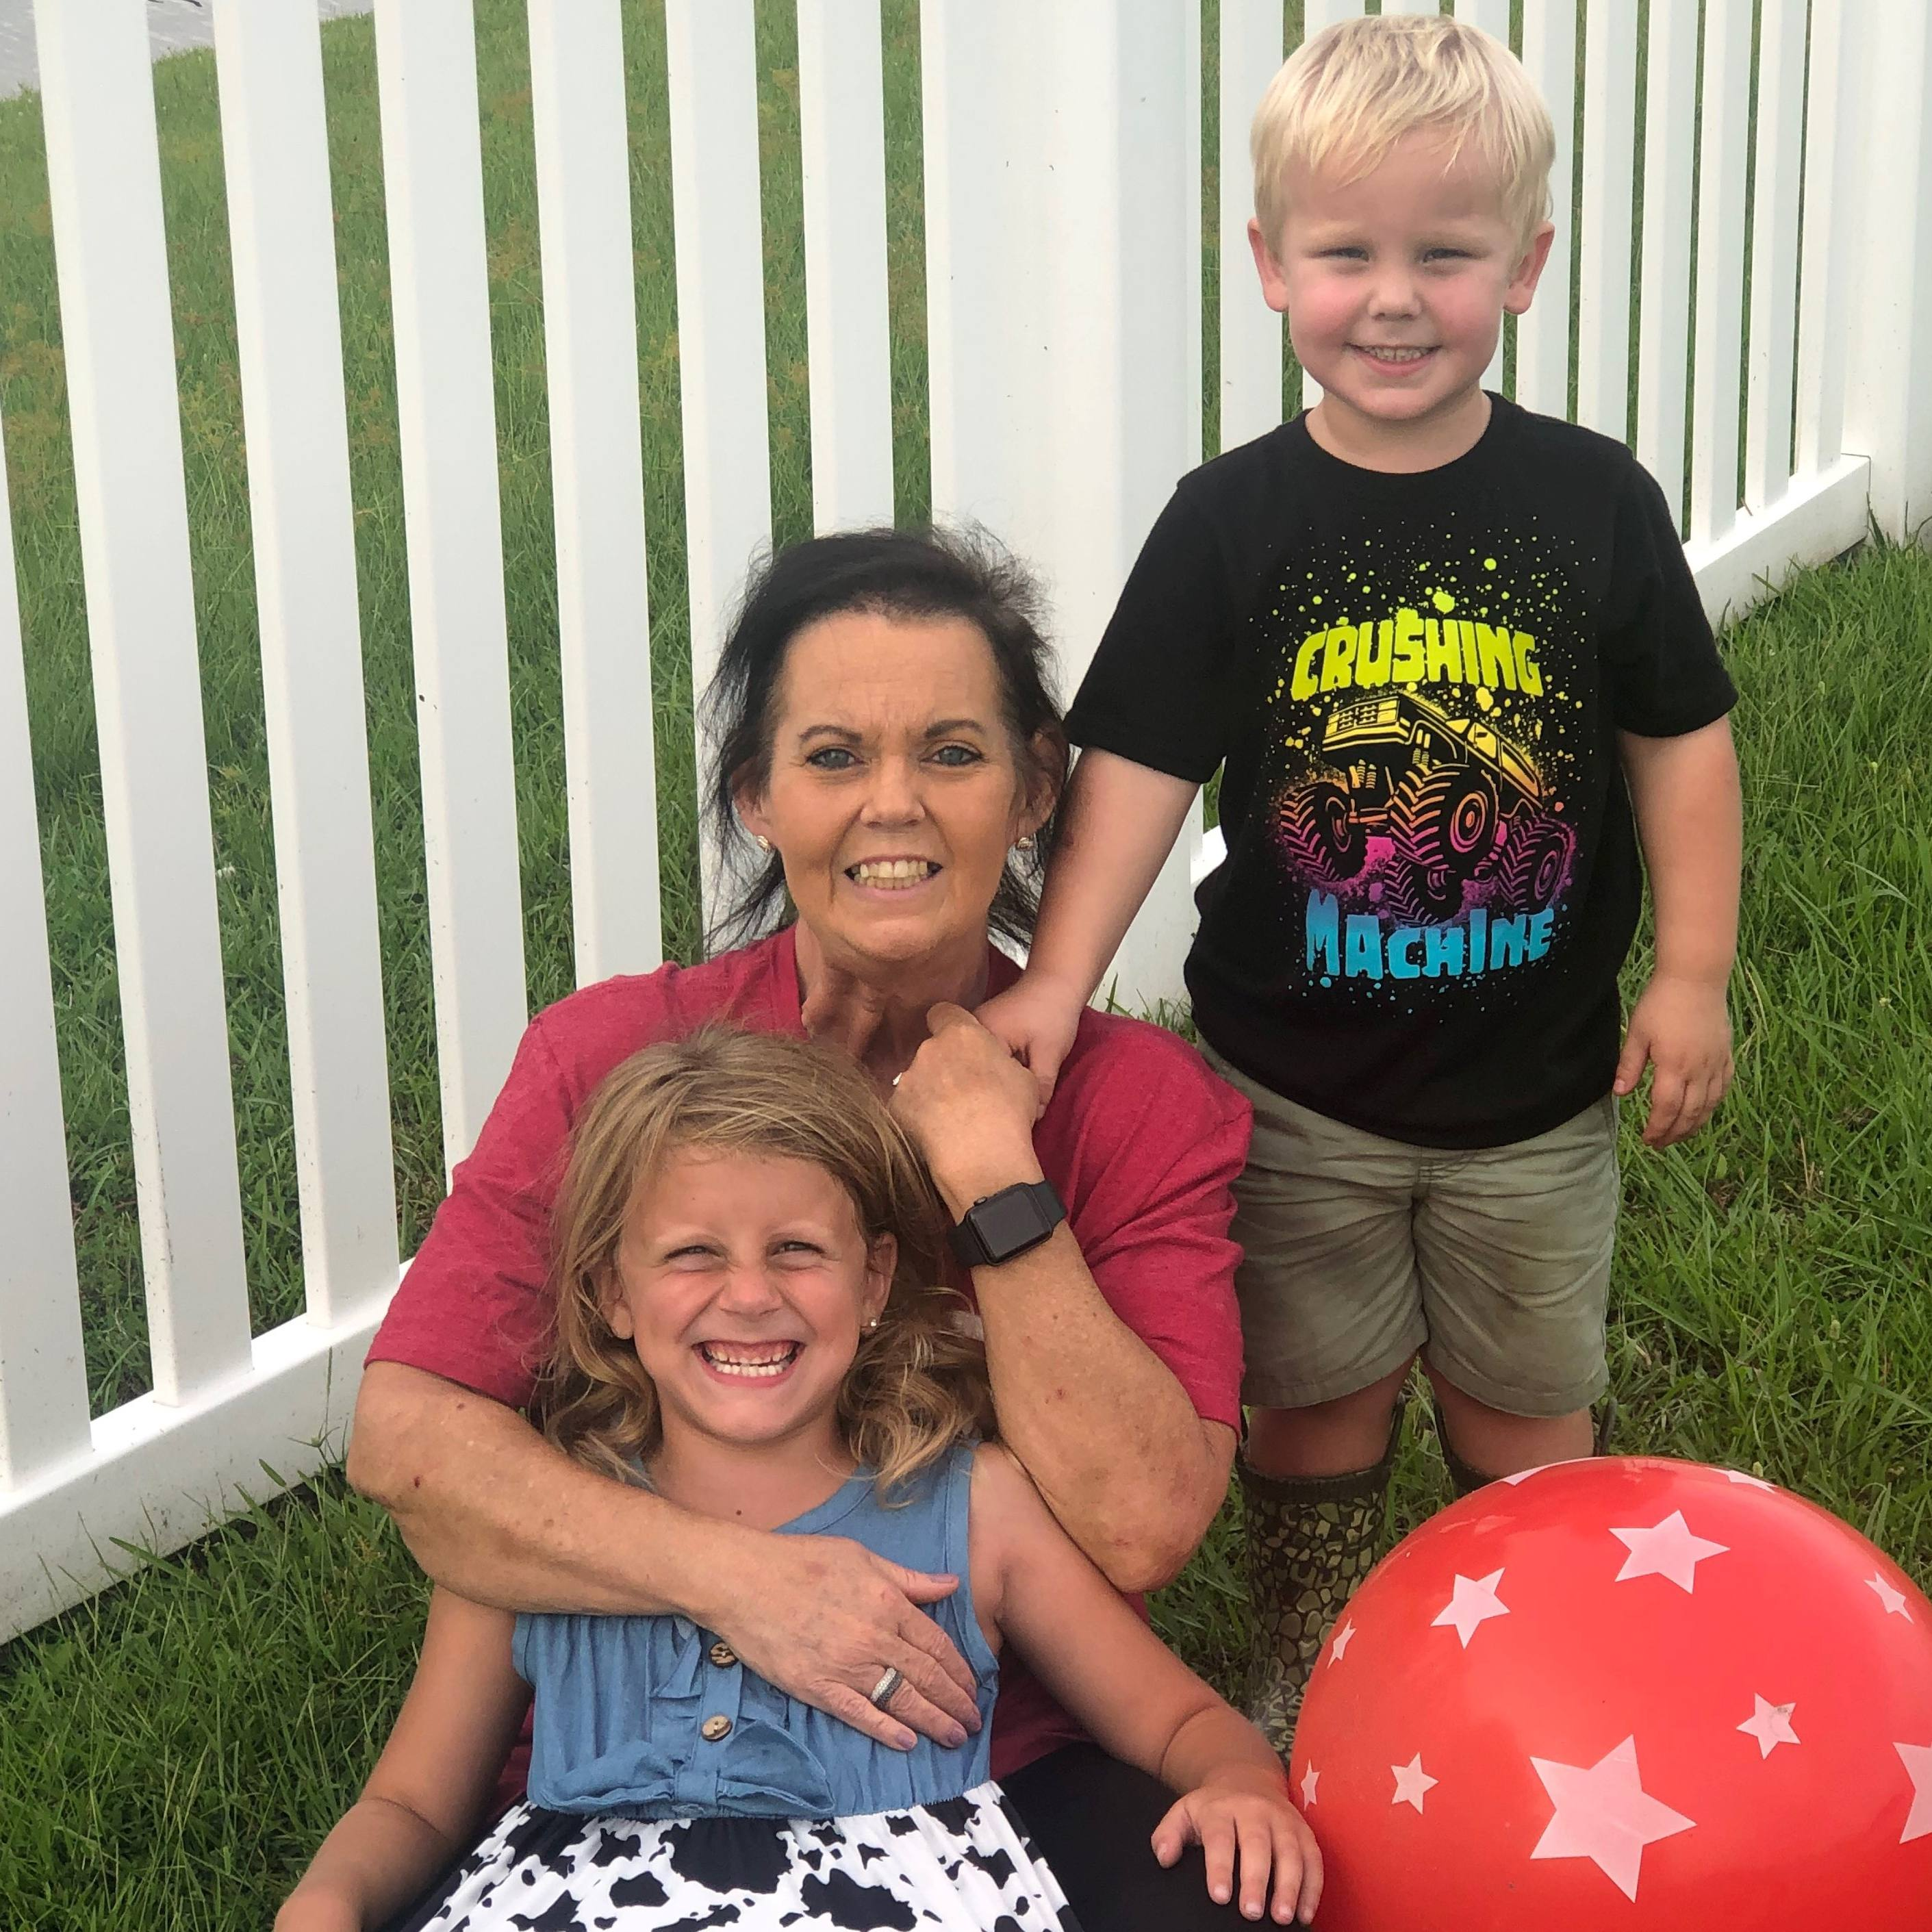 cardiac patient Sandra Driggers outside with her children playing in the grass